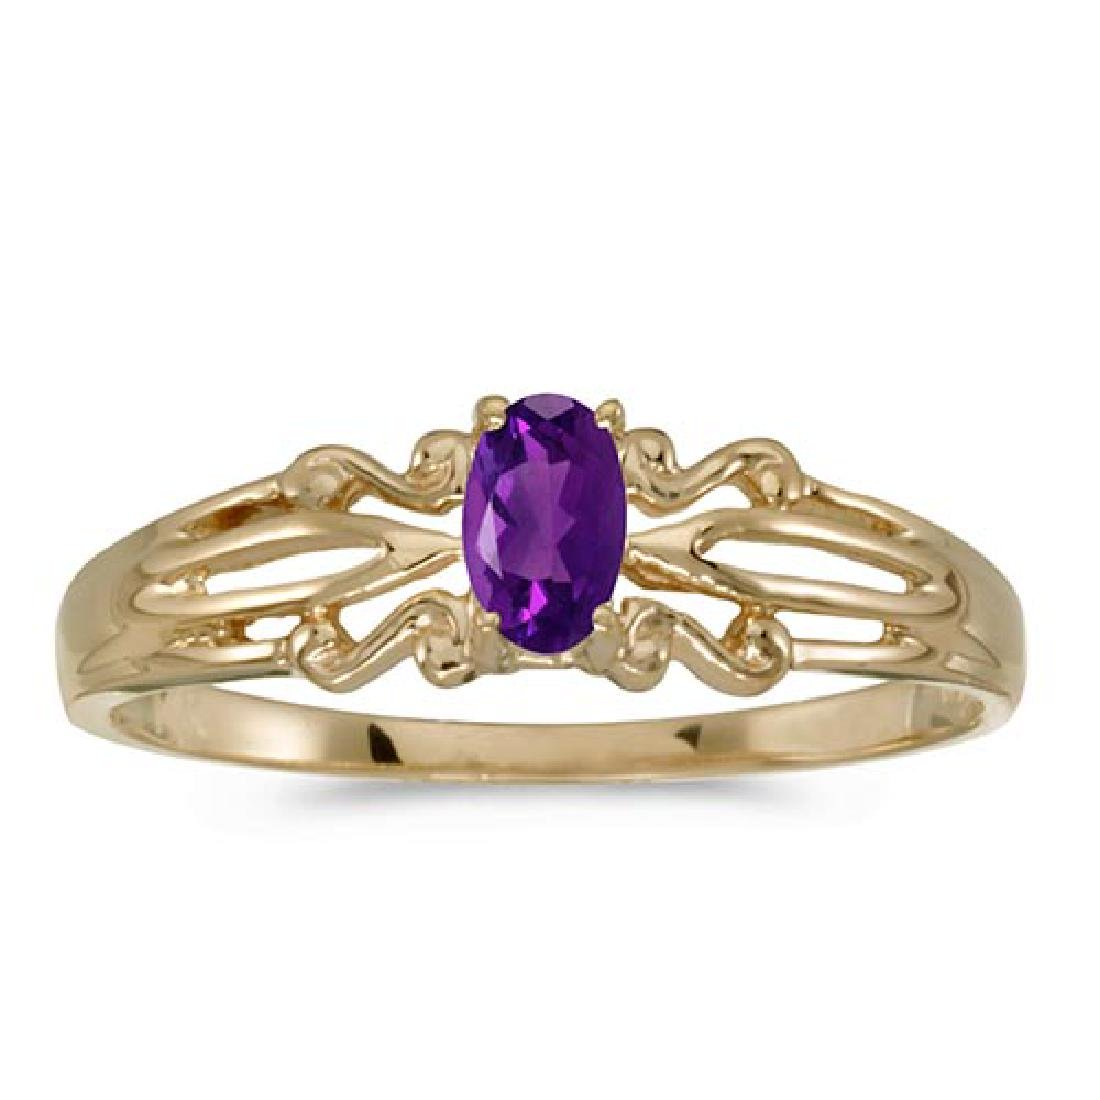 Certified 14k Yellow Gold Oval Amethyst Ring 0.18 CTW